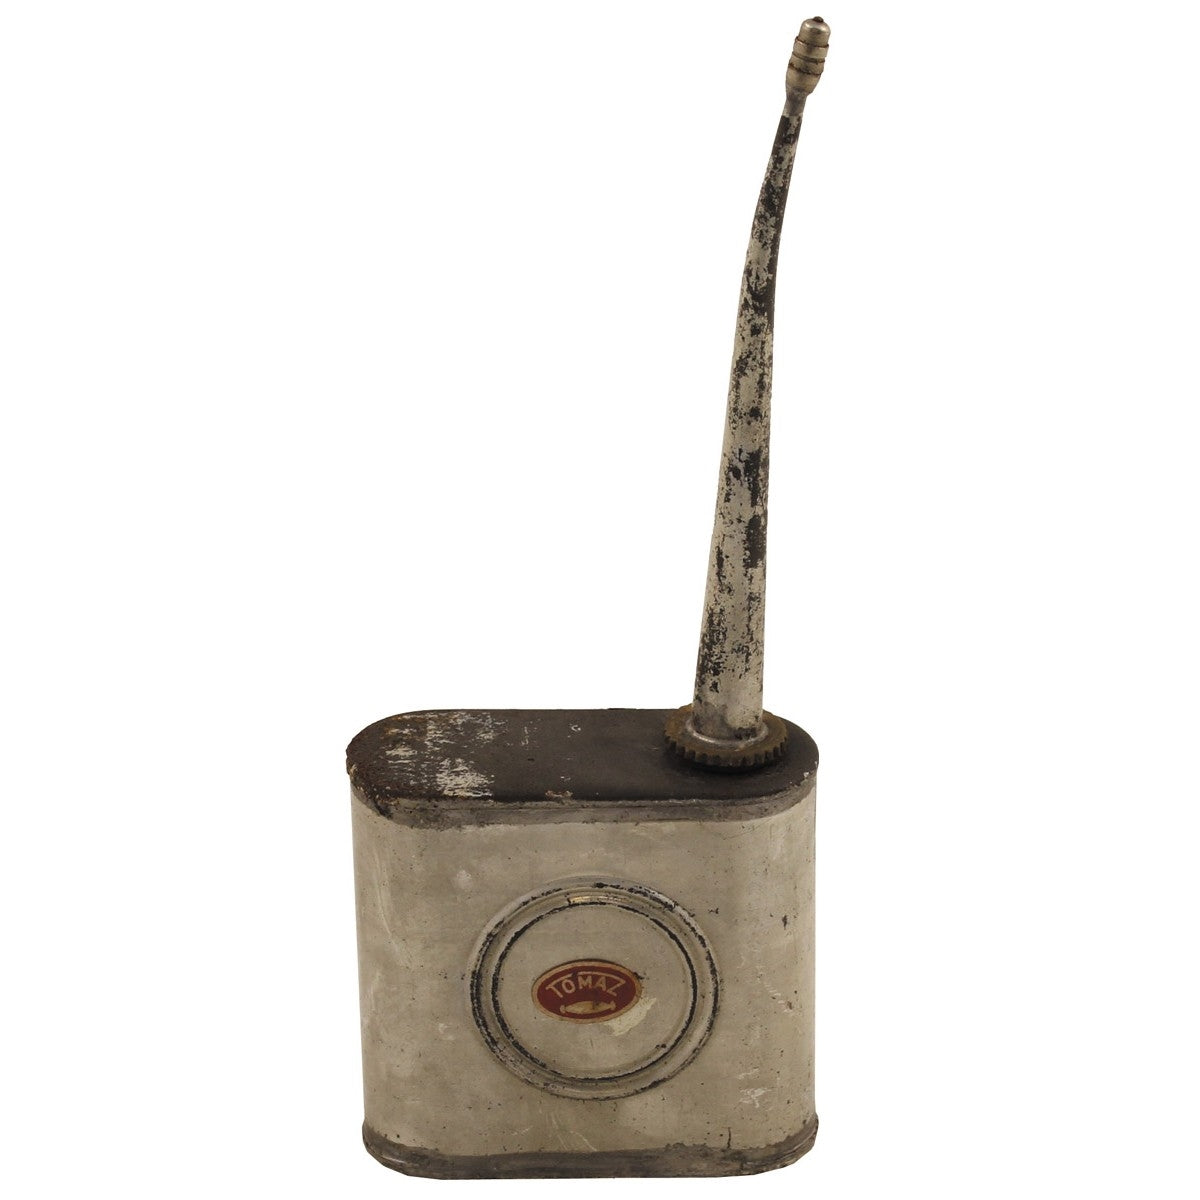 DUP02-Vintage metal alloy oil can